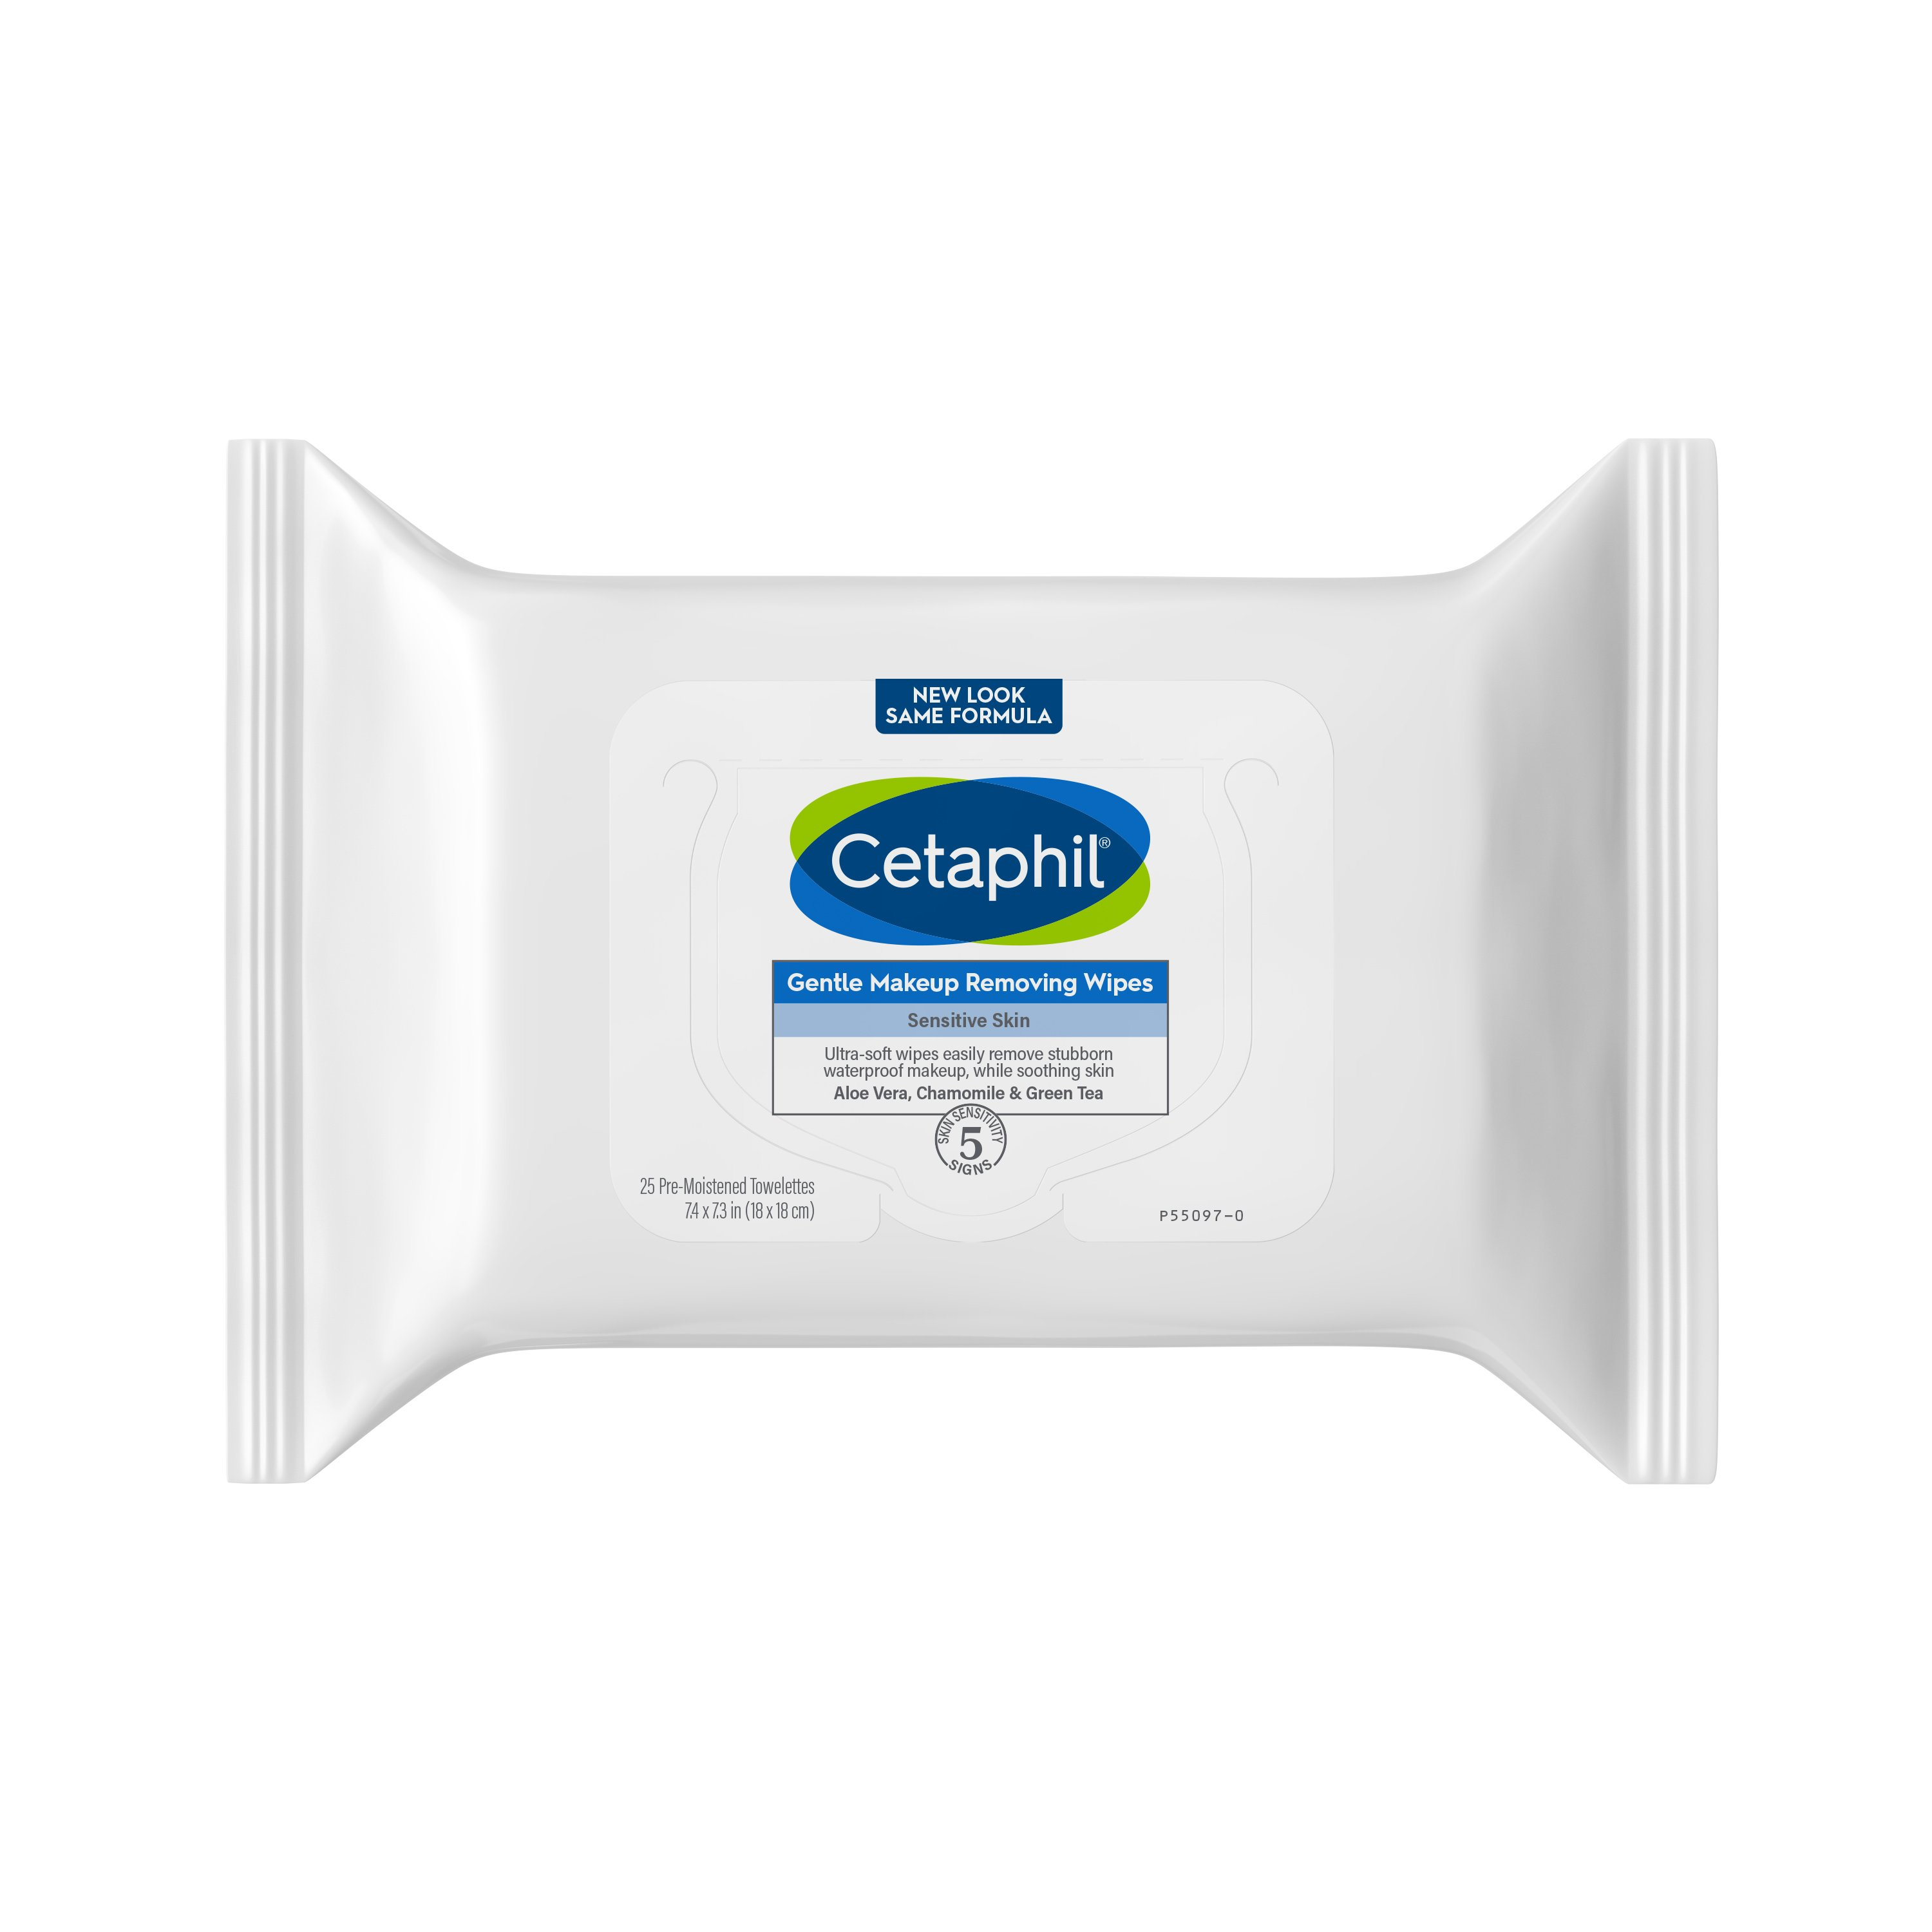 Gentle Makeup Removing Wipes by cetaphil #14